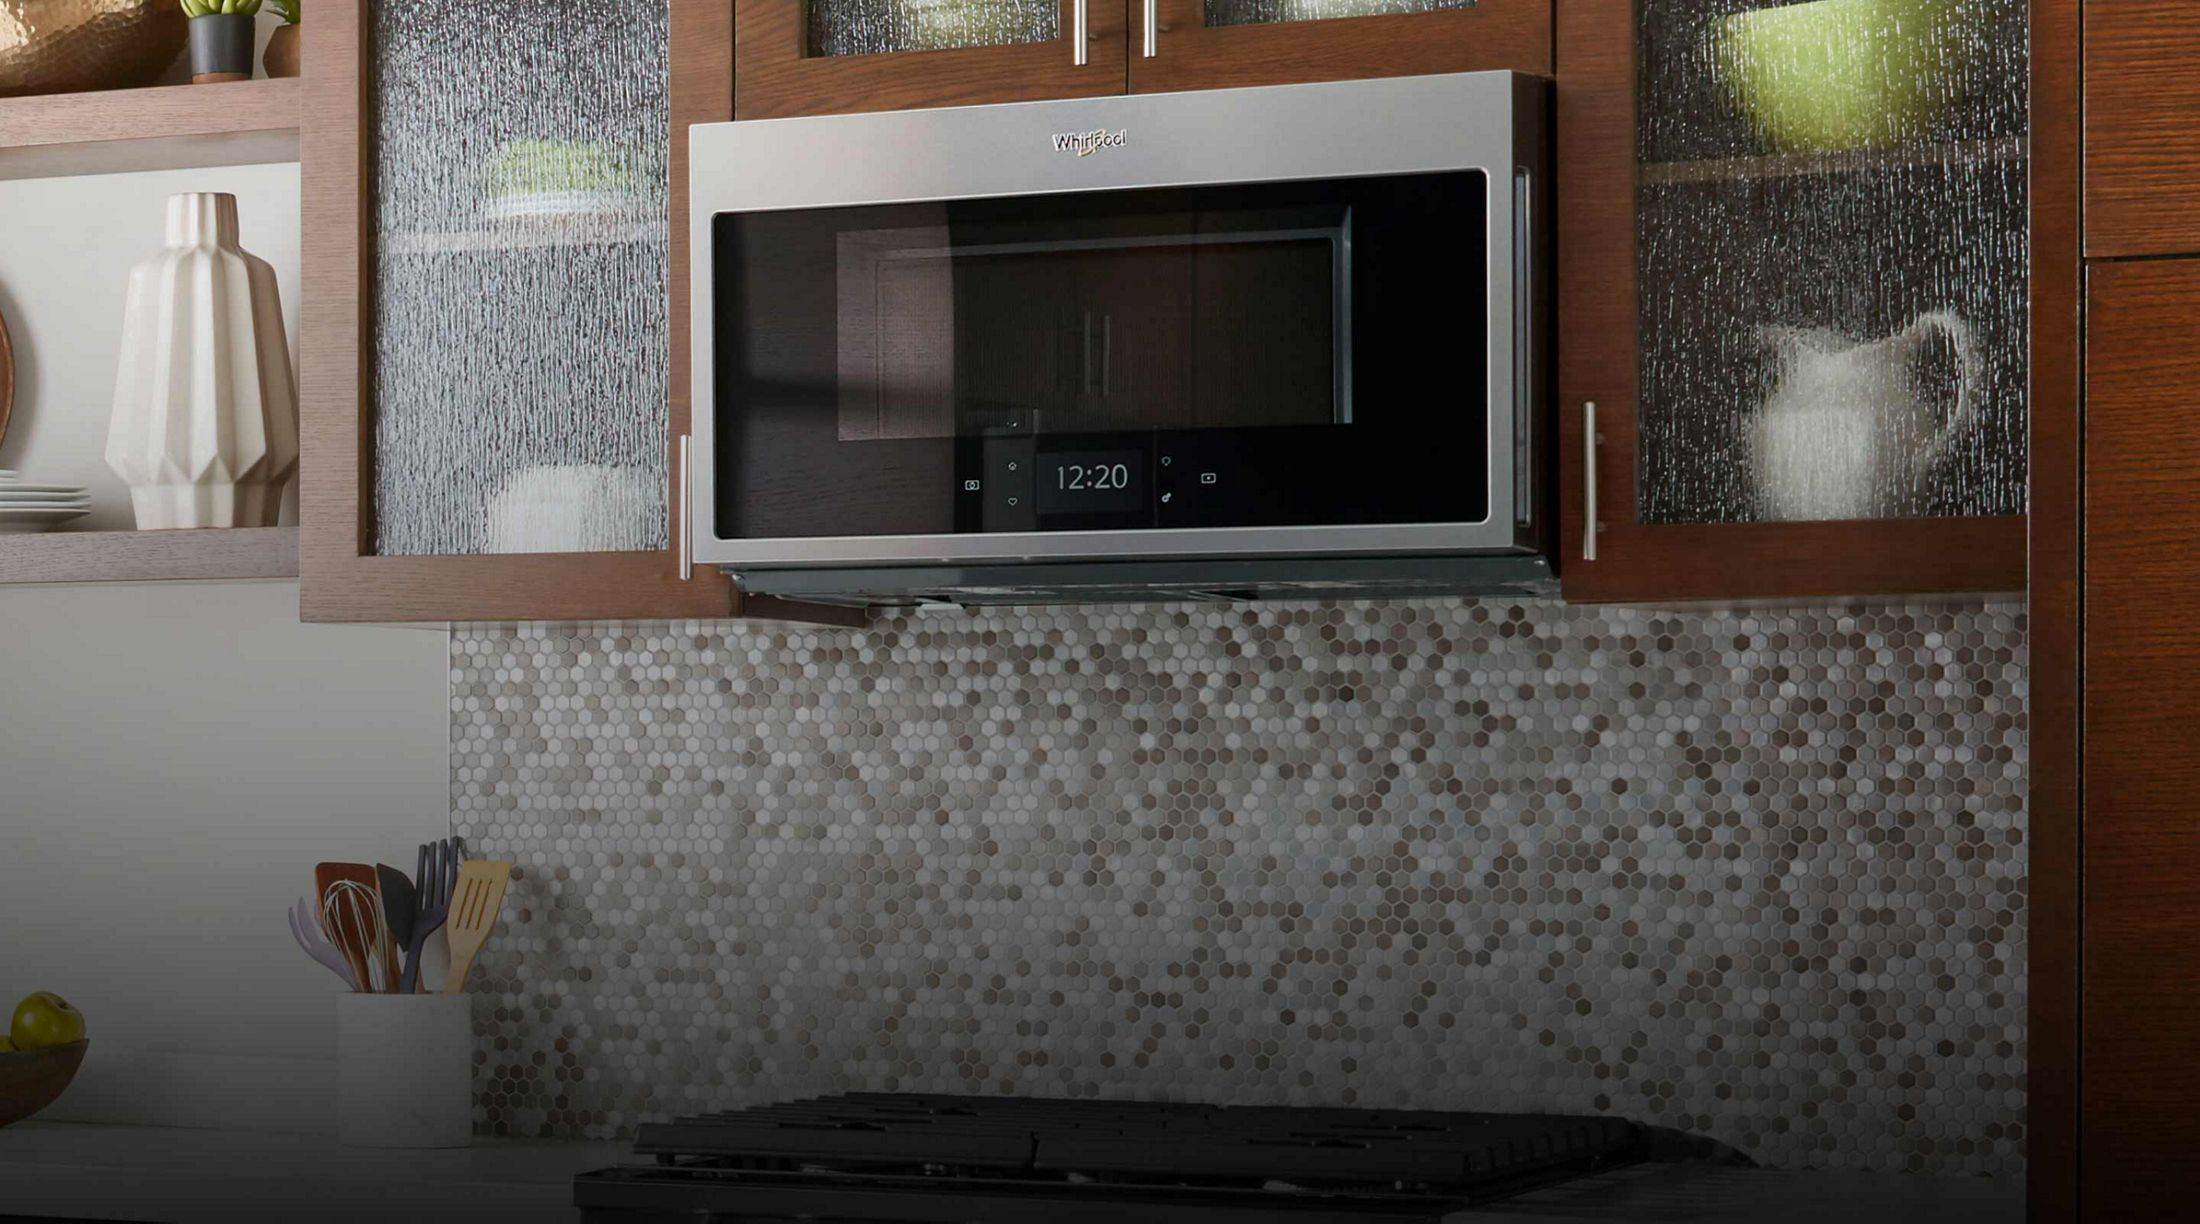 Whirlpool® smart microwave hood combination in a kitchen